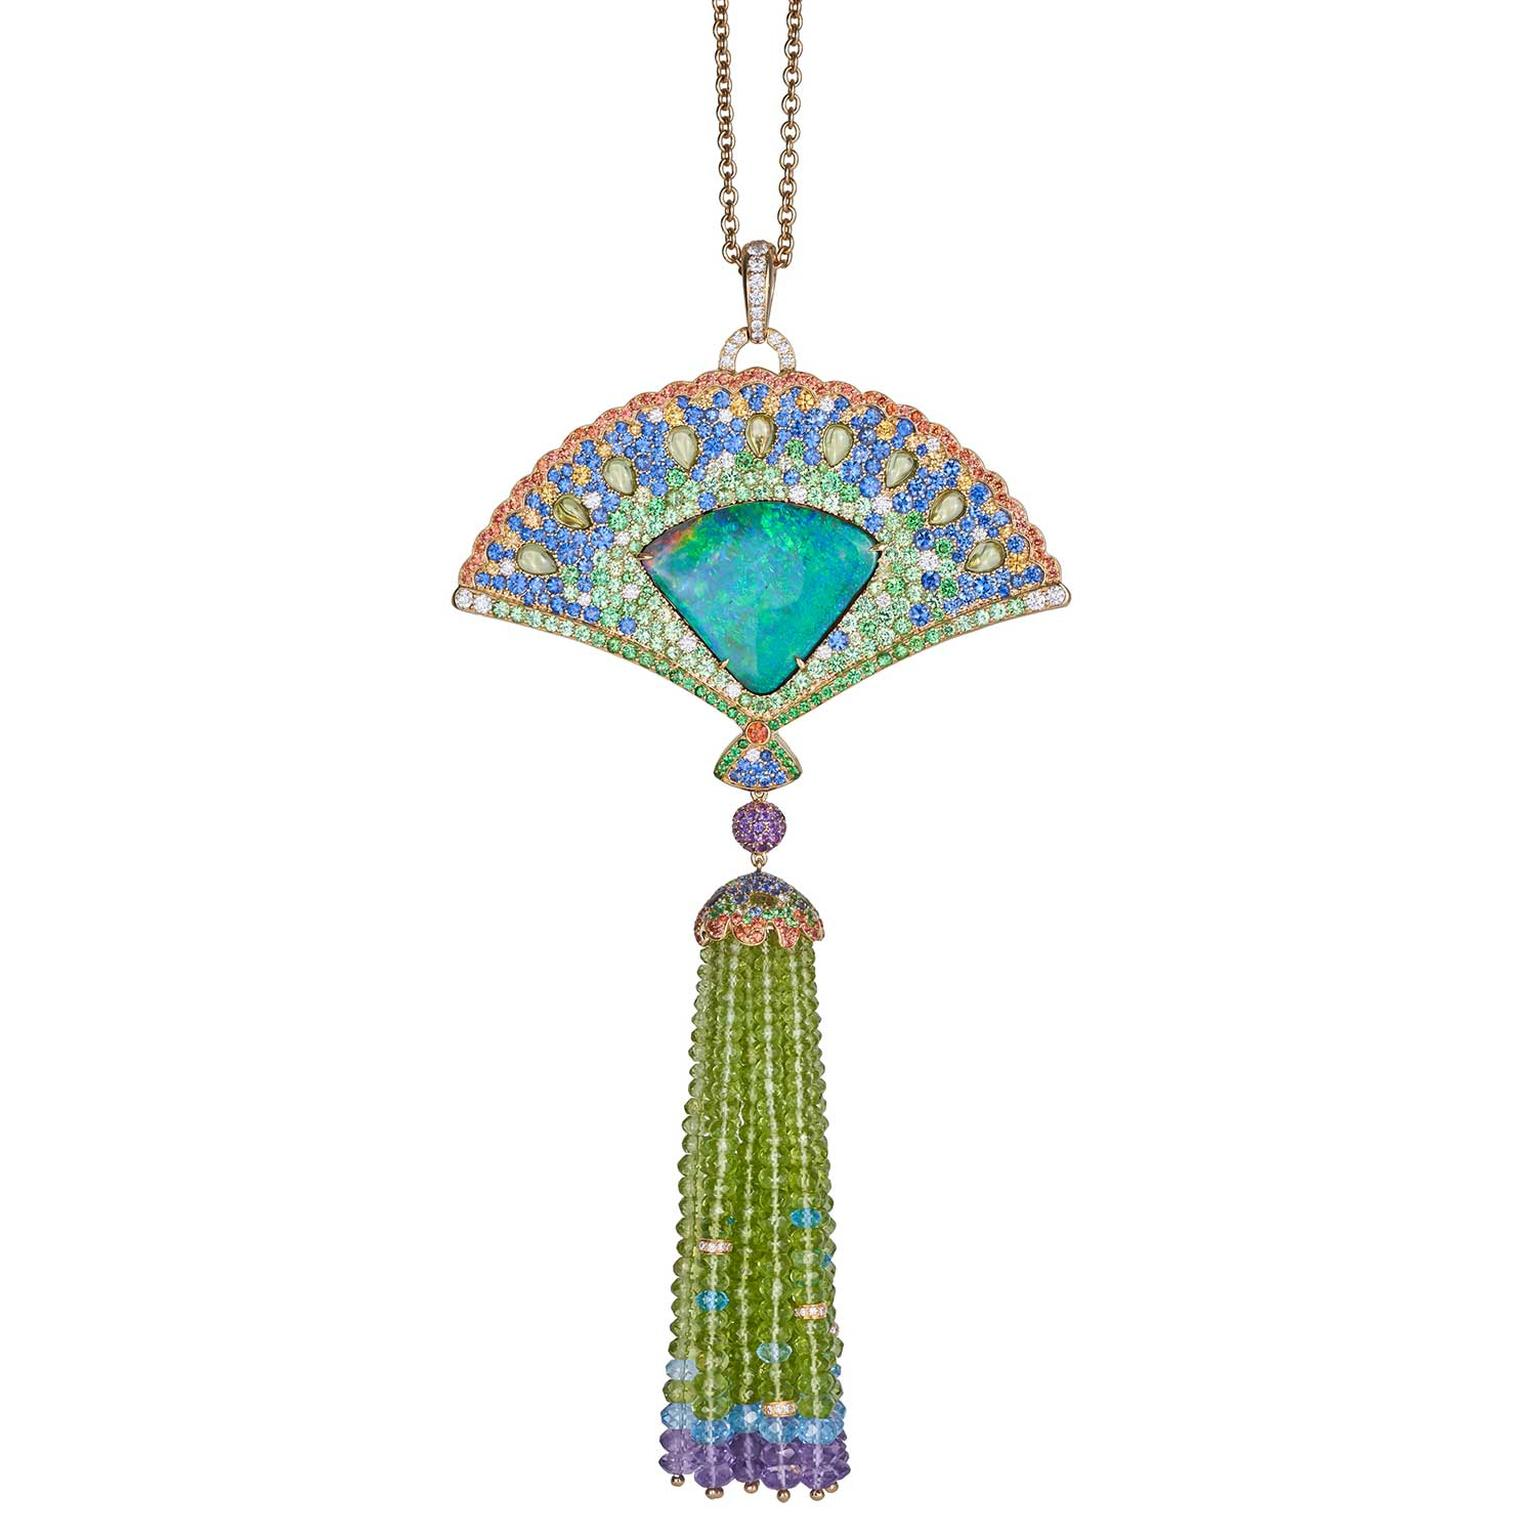 Margot McKinney Australian opal and multi-coloured gemstone pendant necklace